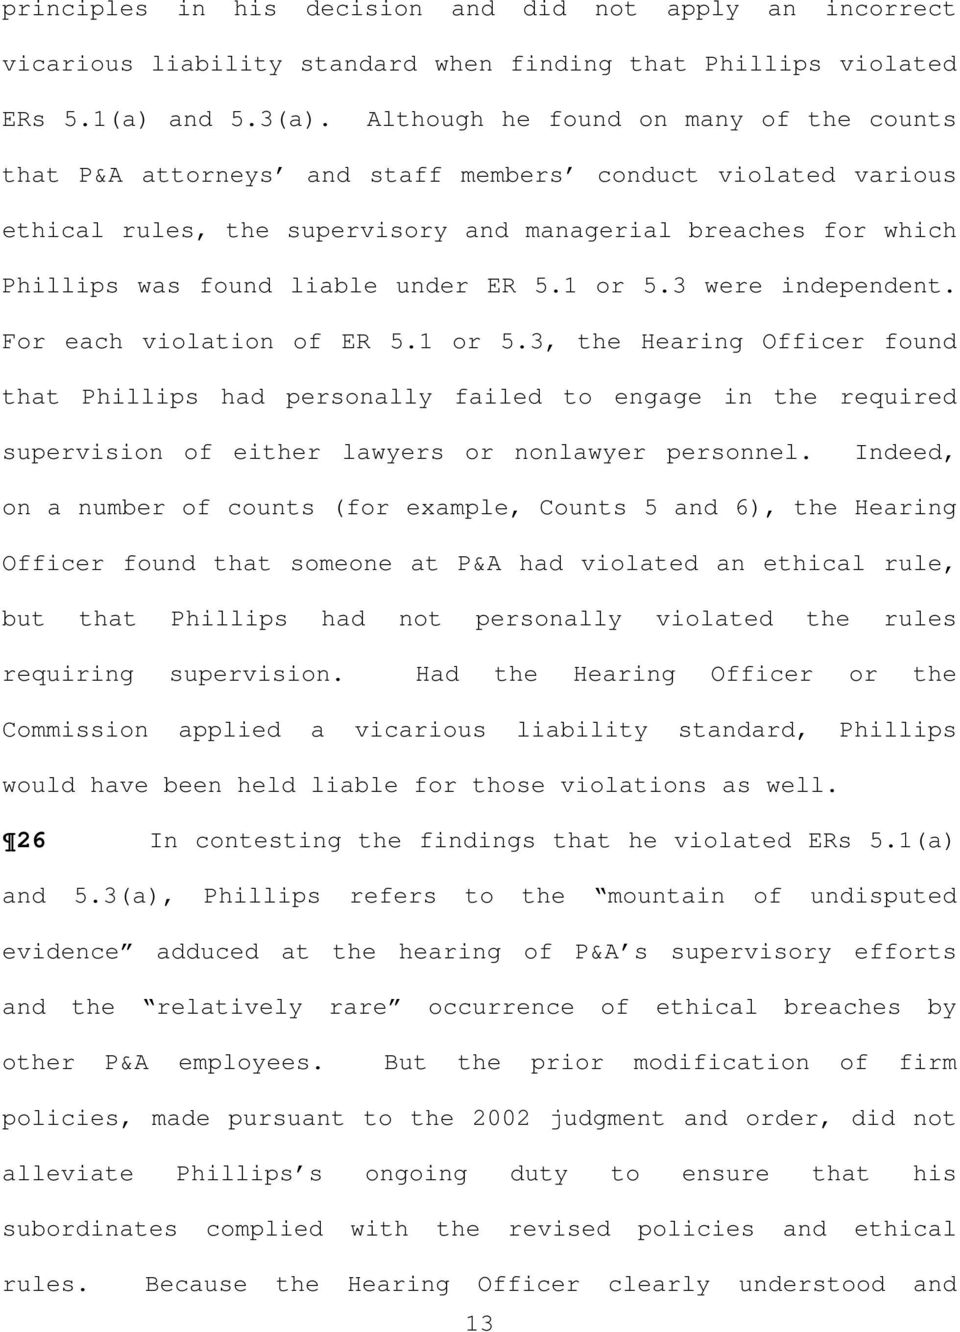 ER 5.1 or 5.3 were independent. For each violation of ER 5.1 or 5.3, the Hearing Officer found that Phillips had personally failed to engage in the required supervision of either lawyers or nonlawyer personnel.